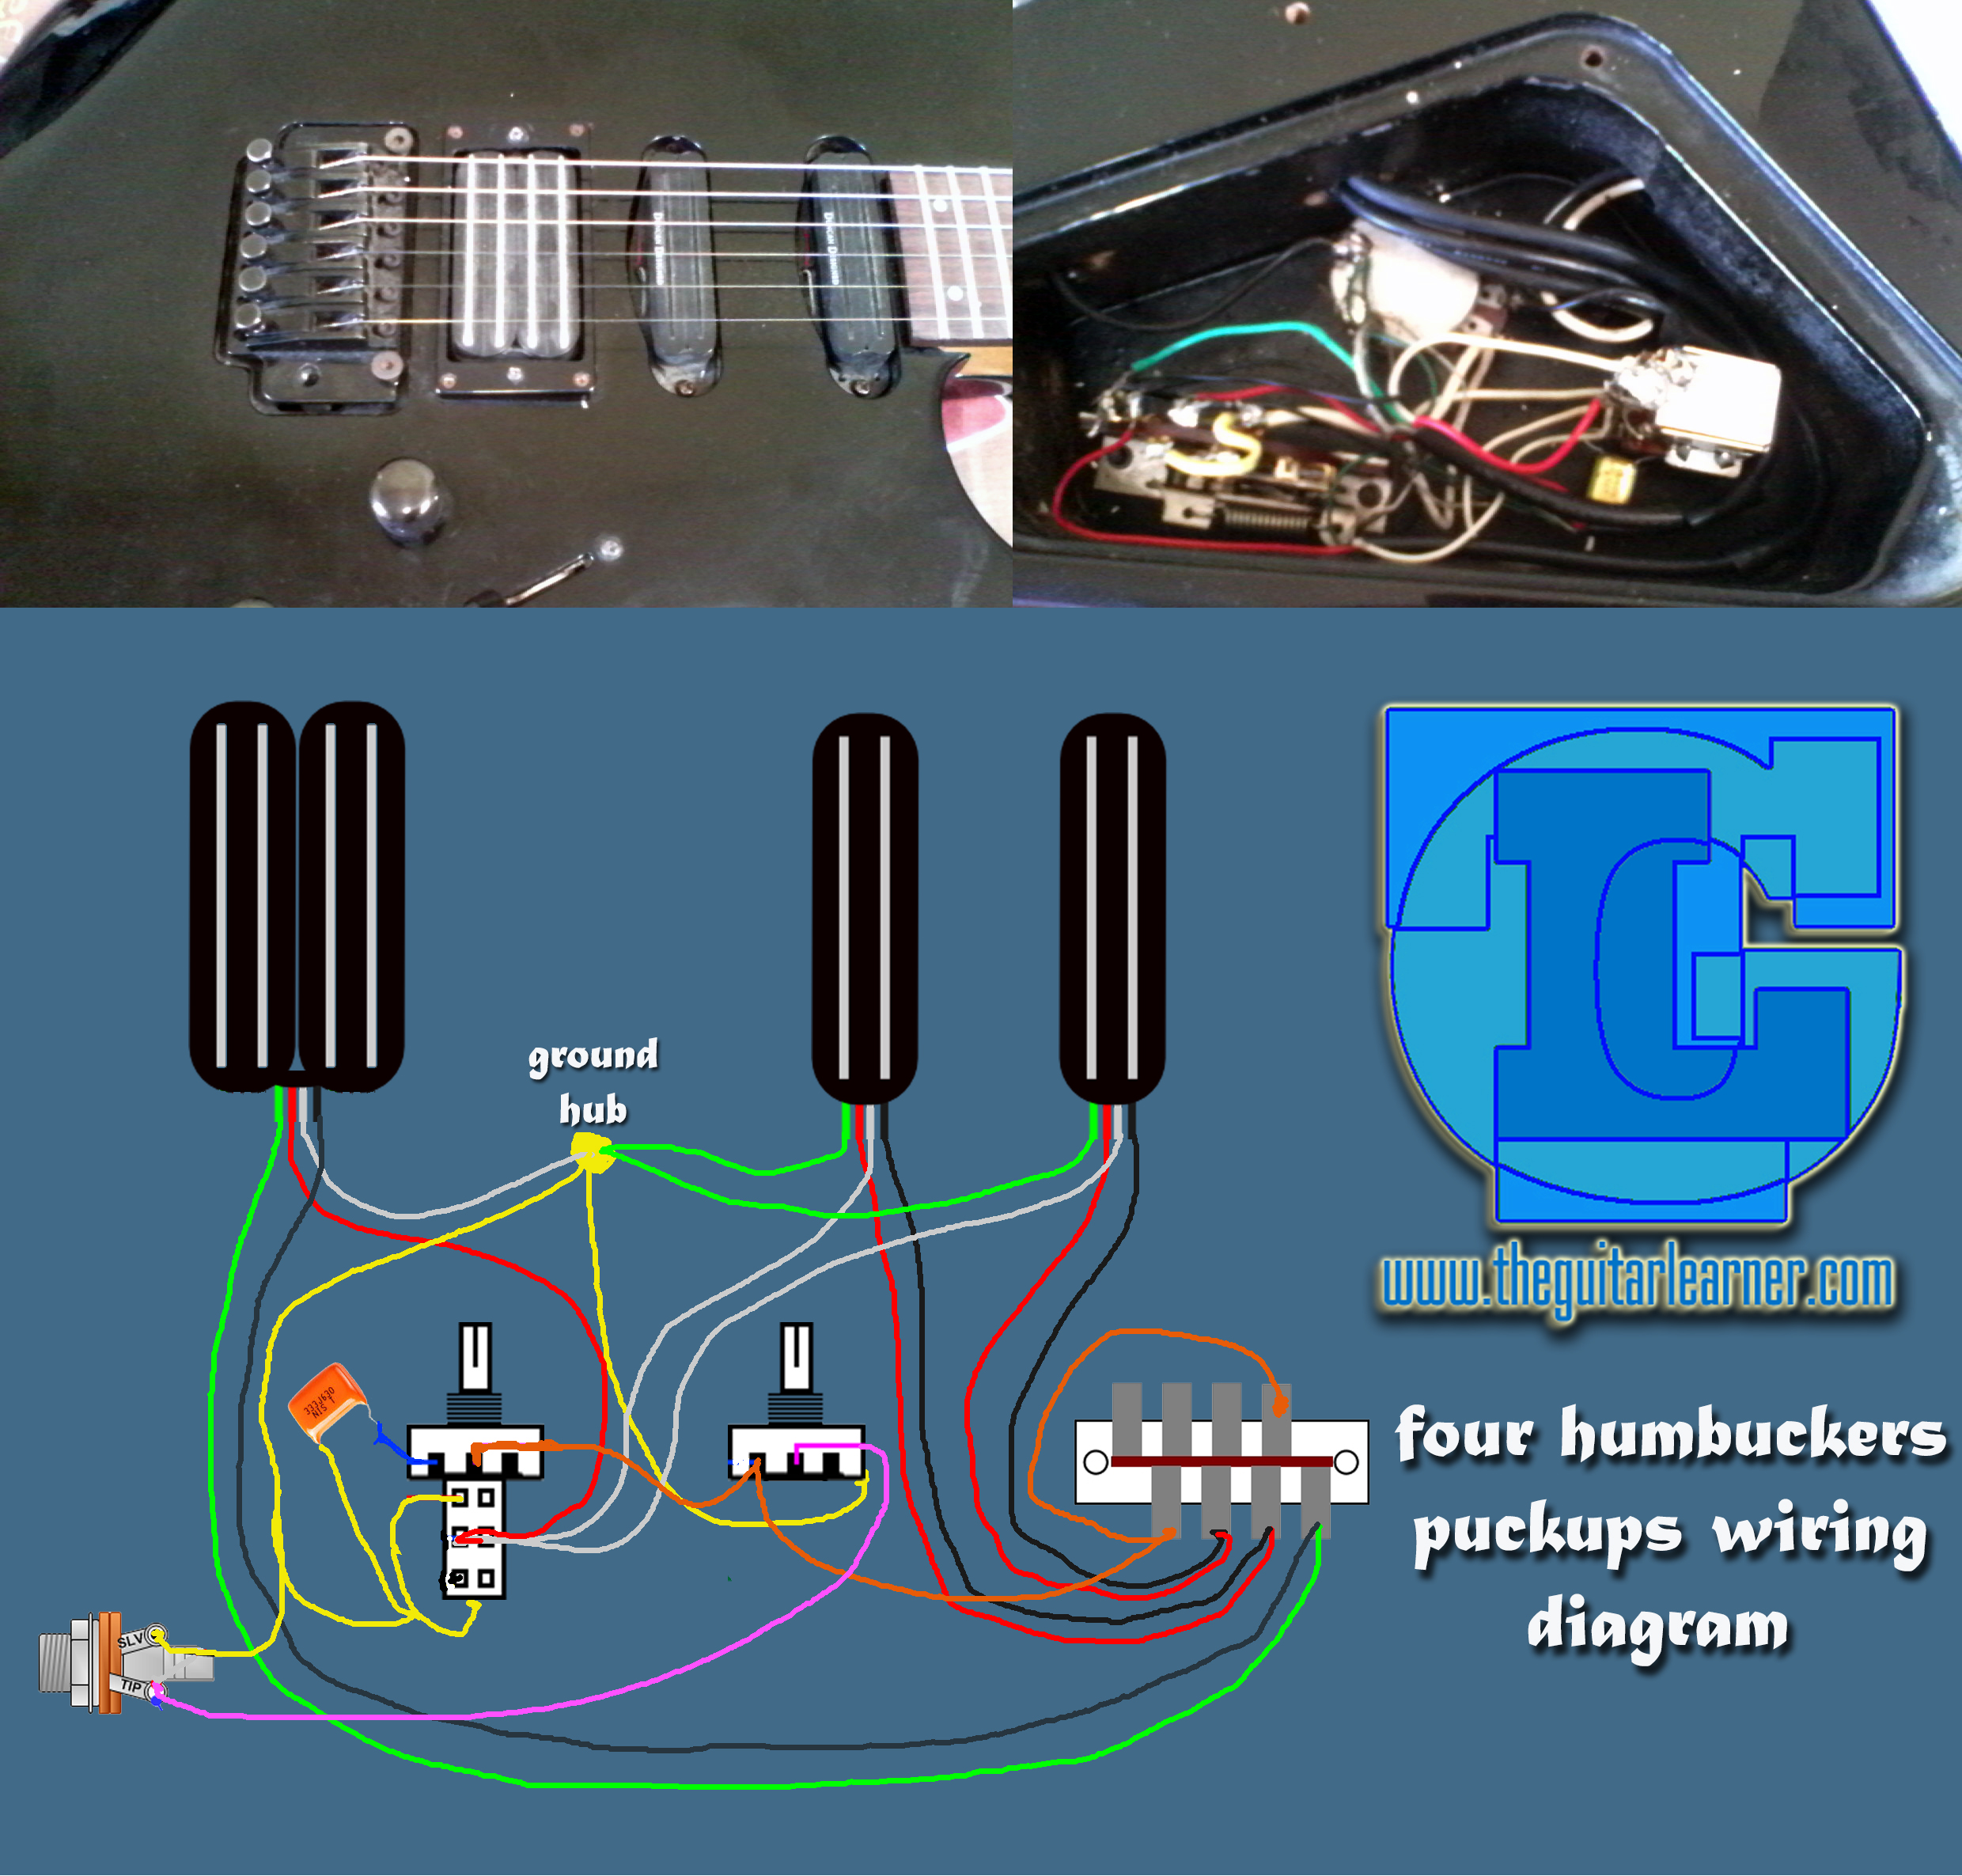 four humbuckers pickup wiring diagram hotrails and quadrail rh theguitarlearner com Telecaster Wiring-Diagram GY6 Wiring Harness Diagram